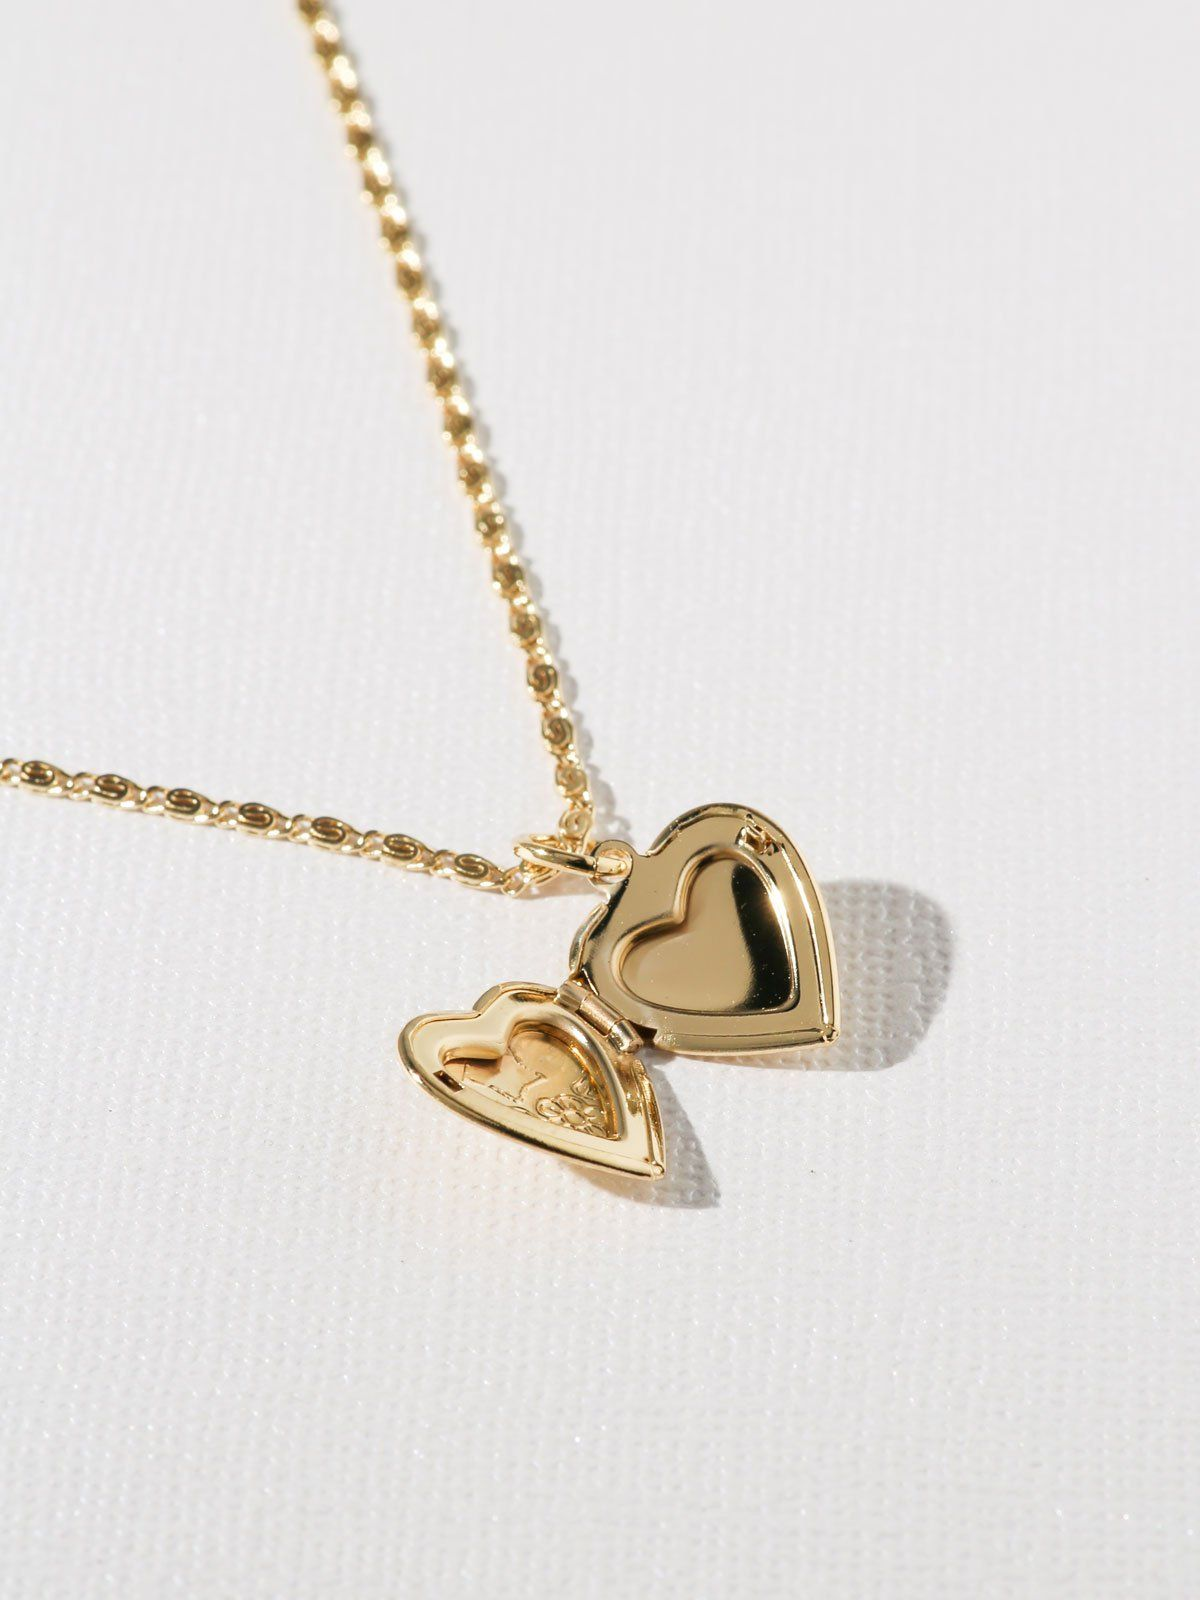 41e6e37401882f The Heart Locket Necklace in 2019 | Jewelry | Heart locket necklace ...